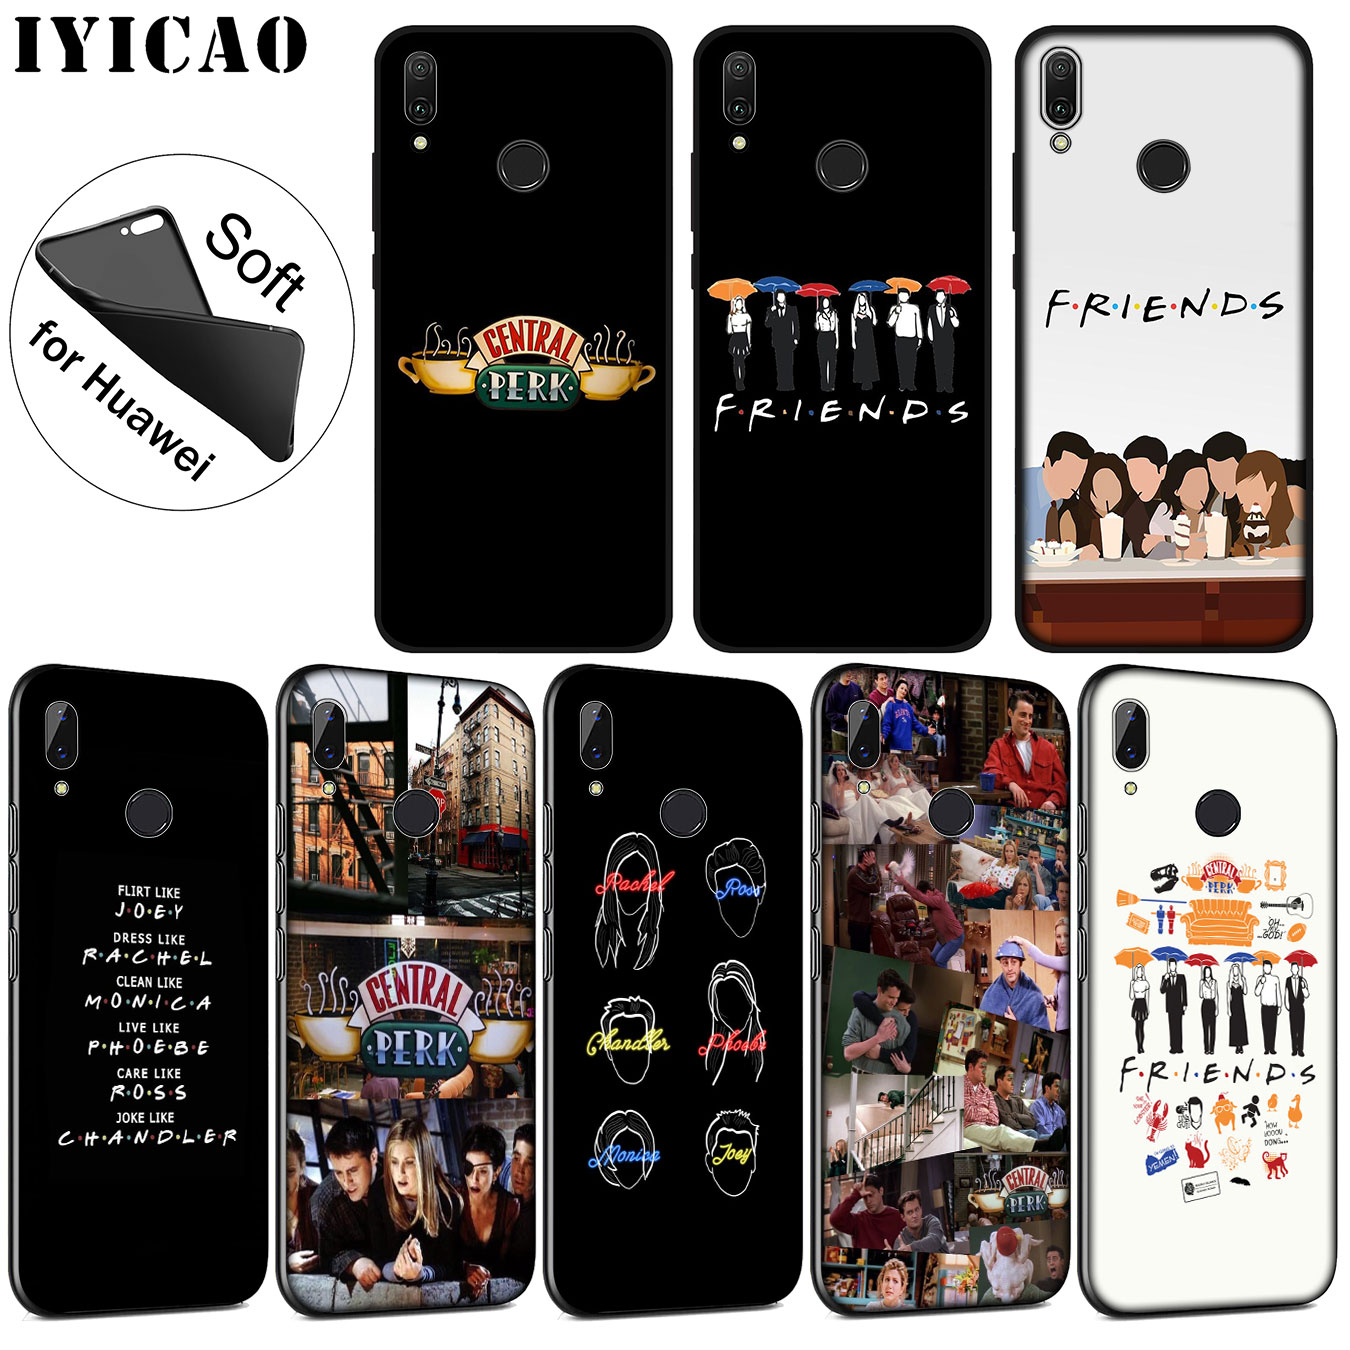 IYICAO Friends TV Soft Silicone Phone Case for Huawei P30 P20 Pro P10 P9 P8 Lite Mini 2017 2016 2015 P smart Z 2019 Cover image